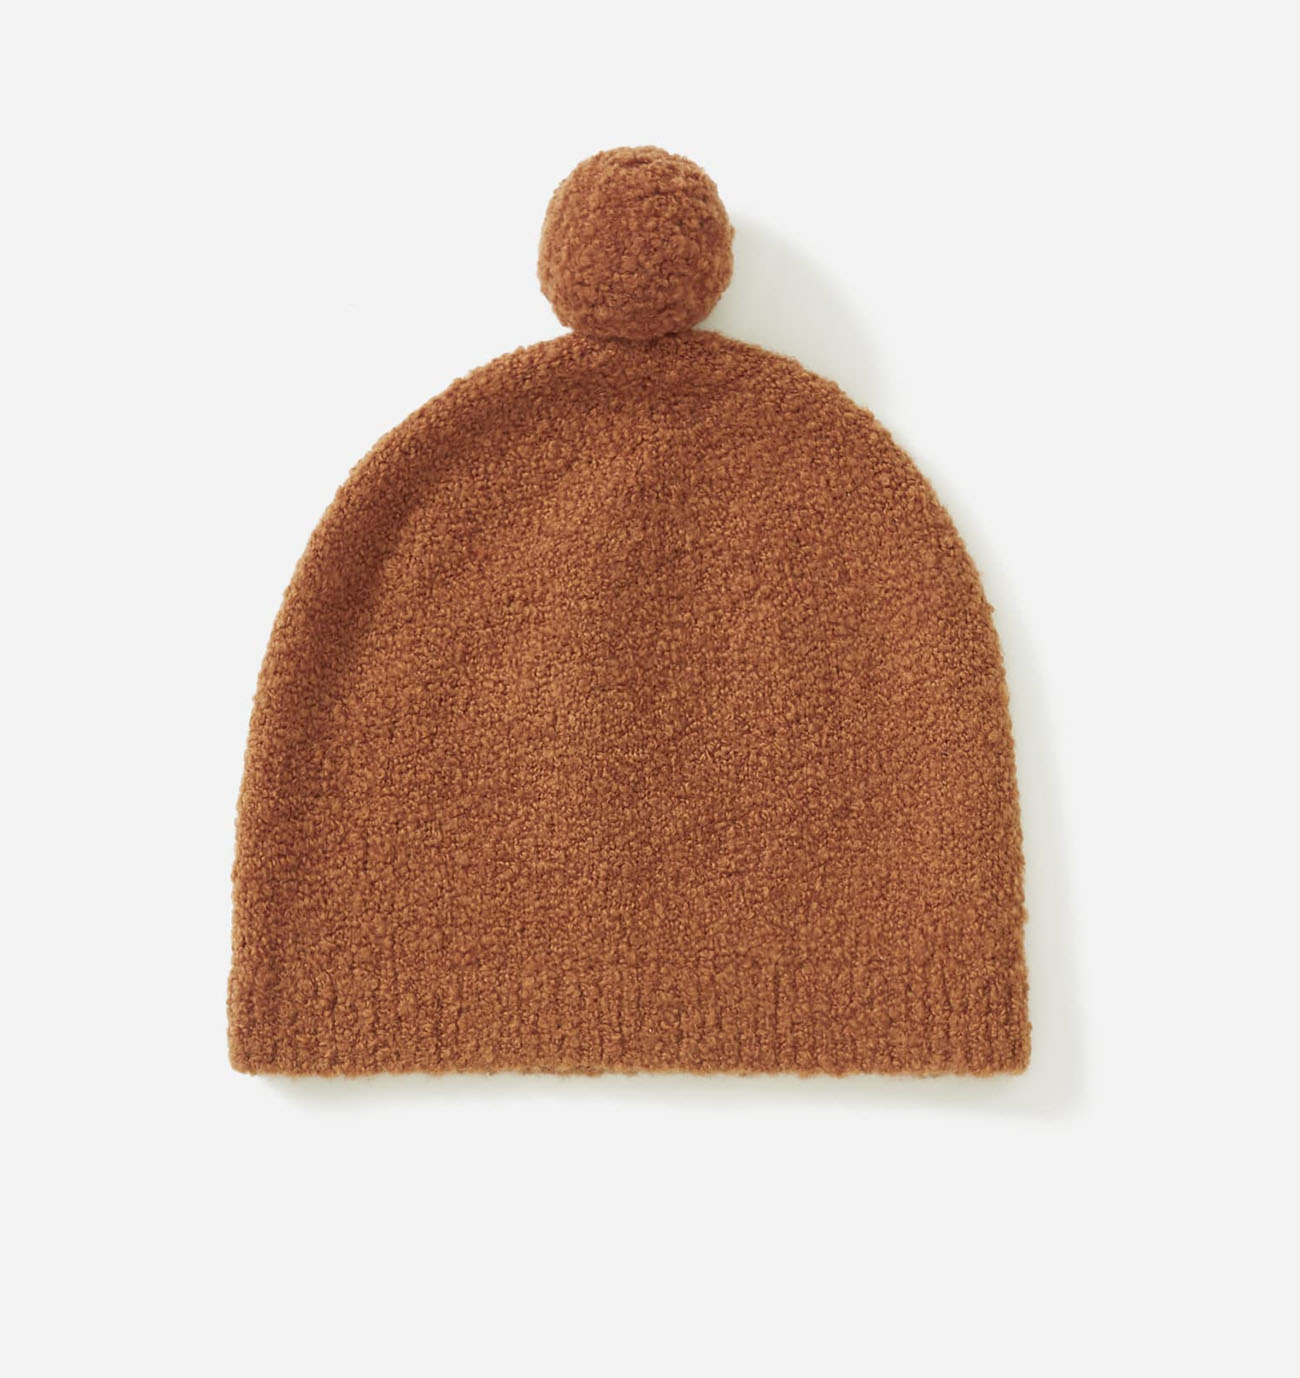 orange teddy beanie from Everlane